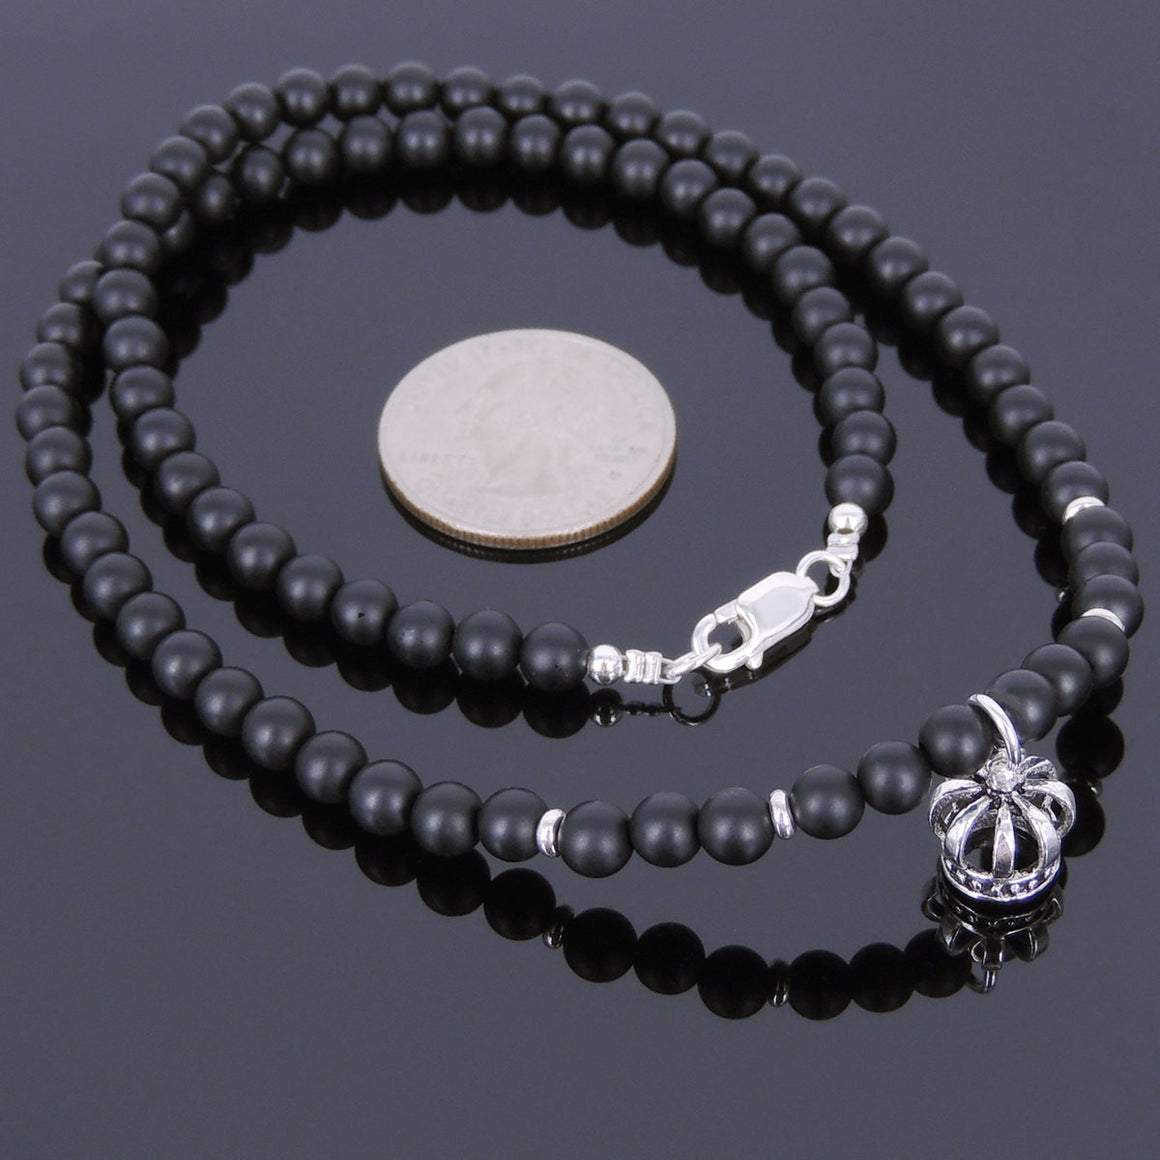 5mm Matte Black Onyx Healing Gemstone Necklace with S925 Sterling Silver Crown Pendant & Clasp - Handmade by Gem & Silver NK040